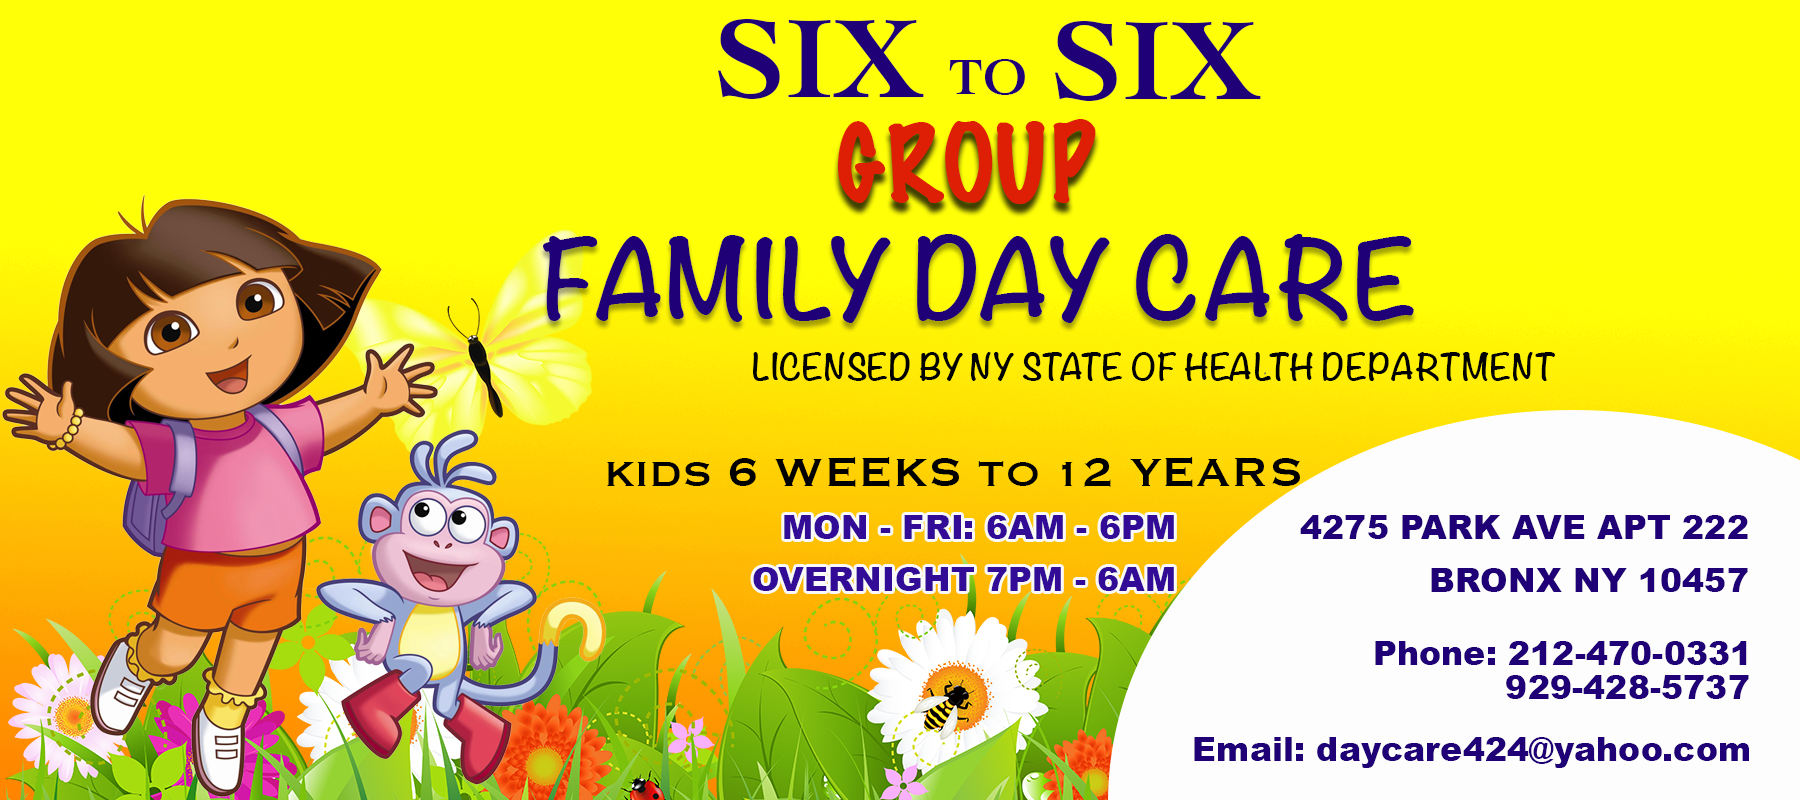 SIX TO SIX GROUP FAMILY DAY CARE